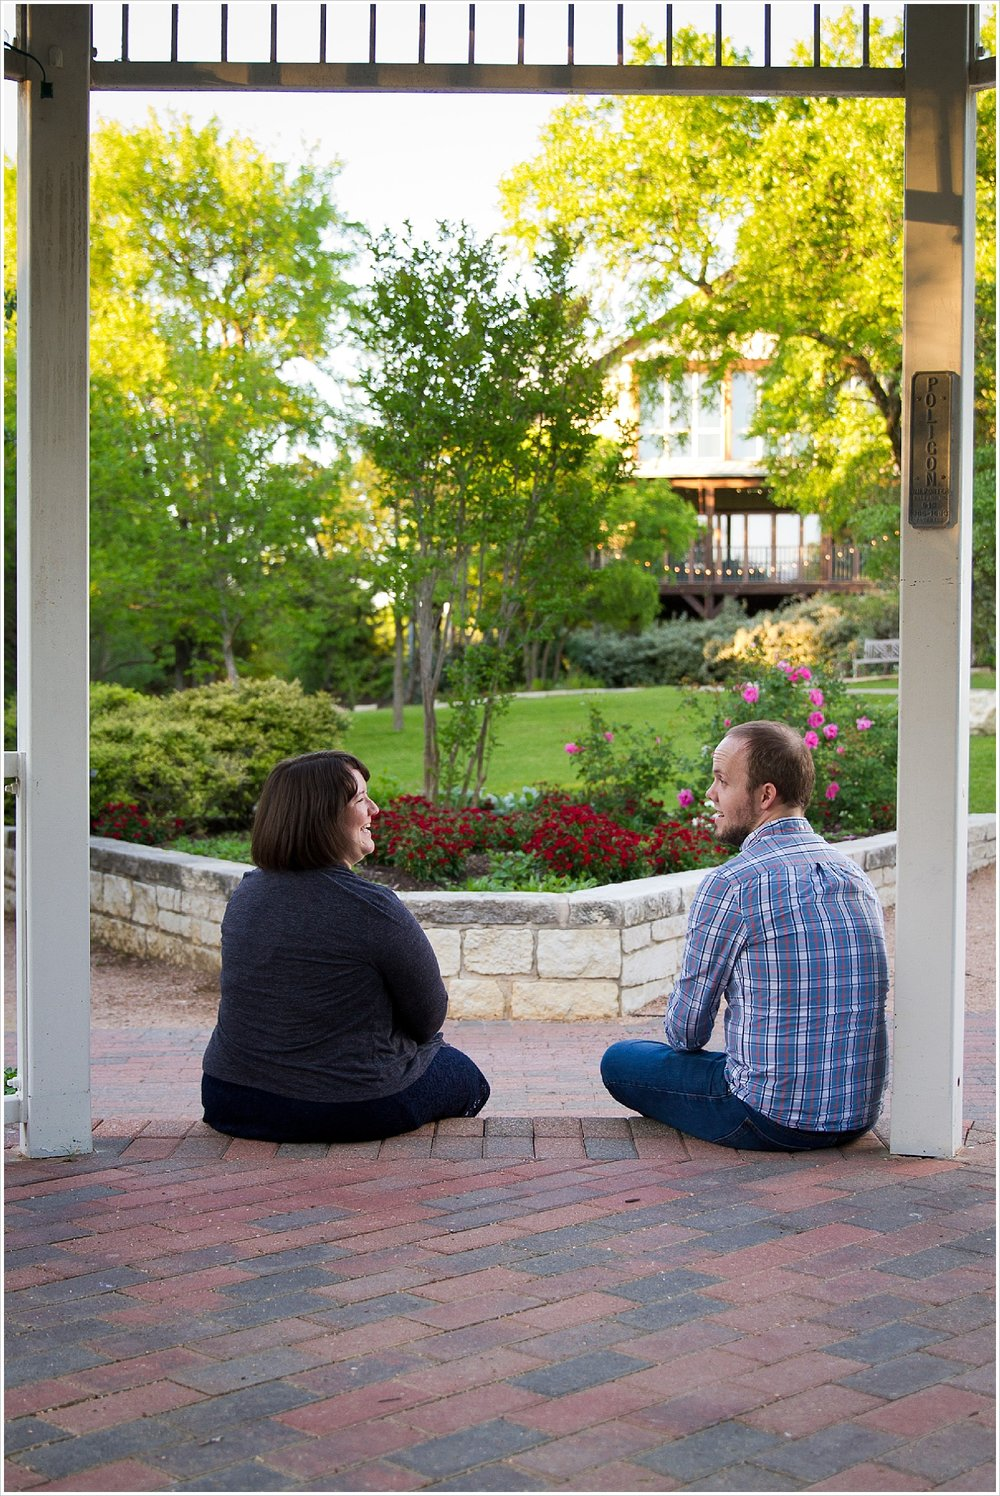 Couple recreates final scene of Gilmore Girls movies for pregnancy announcement